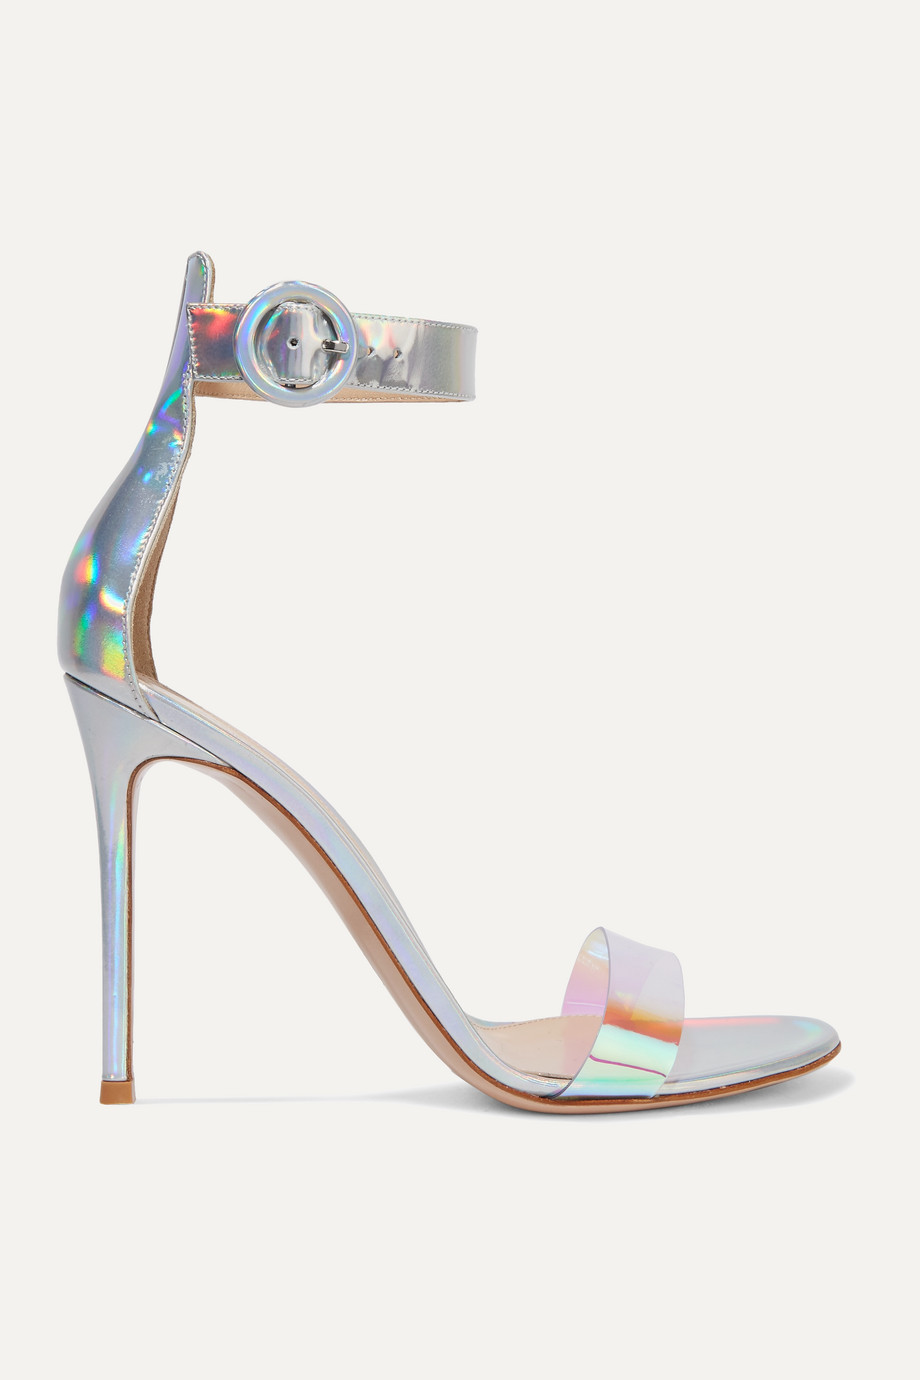 Gianvito Rossi Portofino 105 iridecent leather and PVC sandals